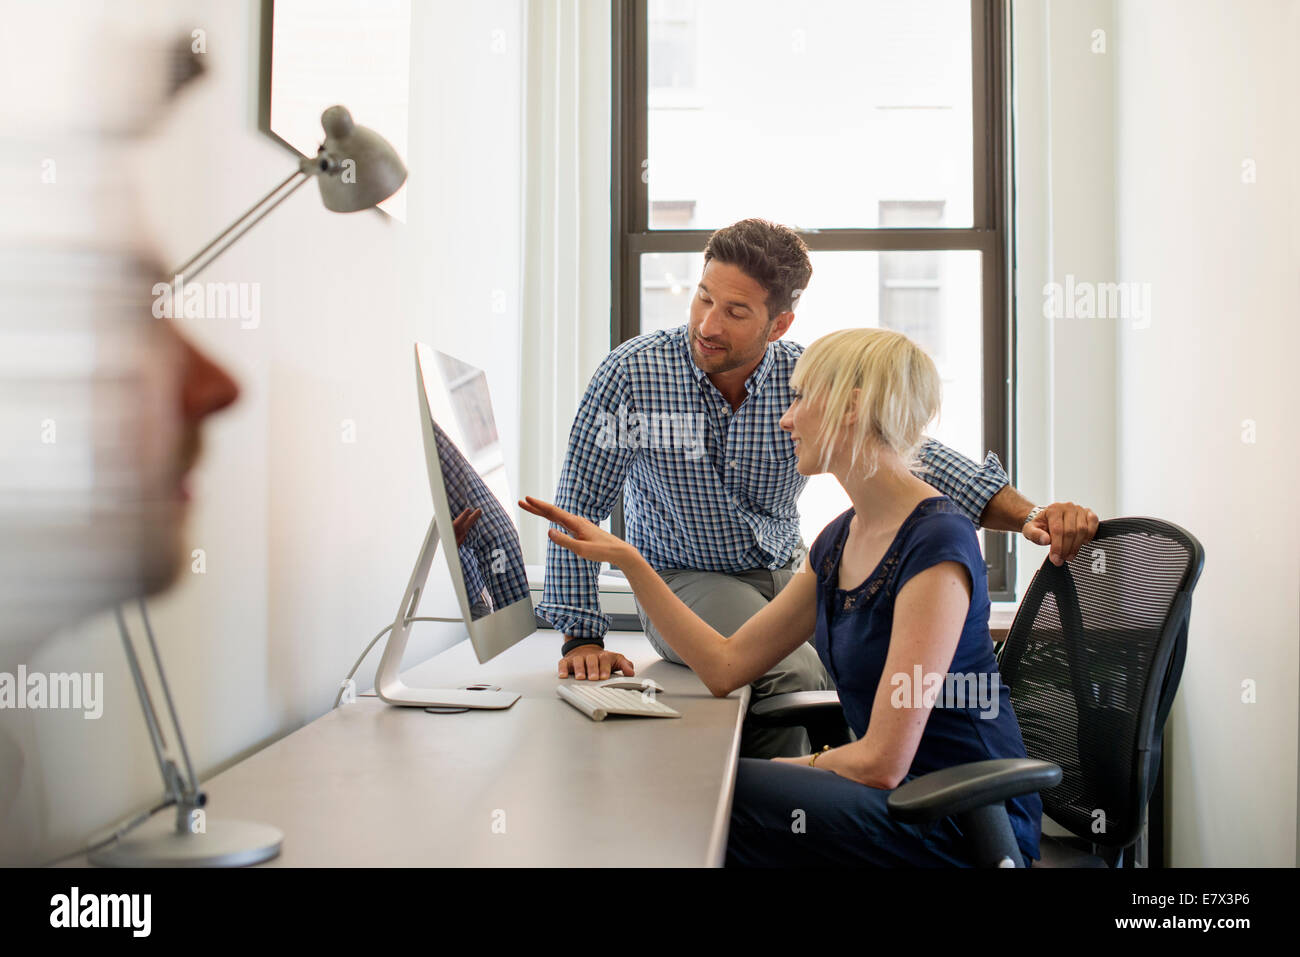 Three business colleagues in an office, two talking and one standing by the door. - Stock Image